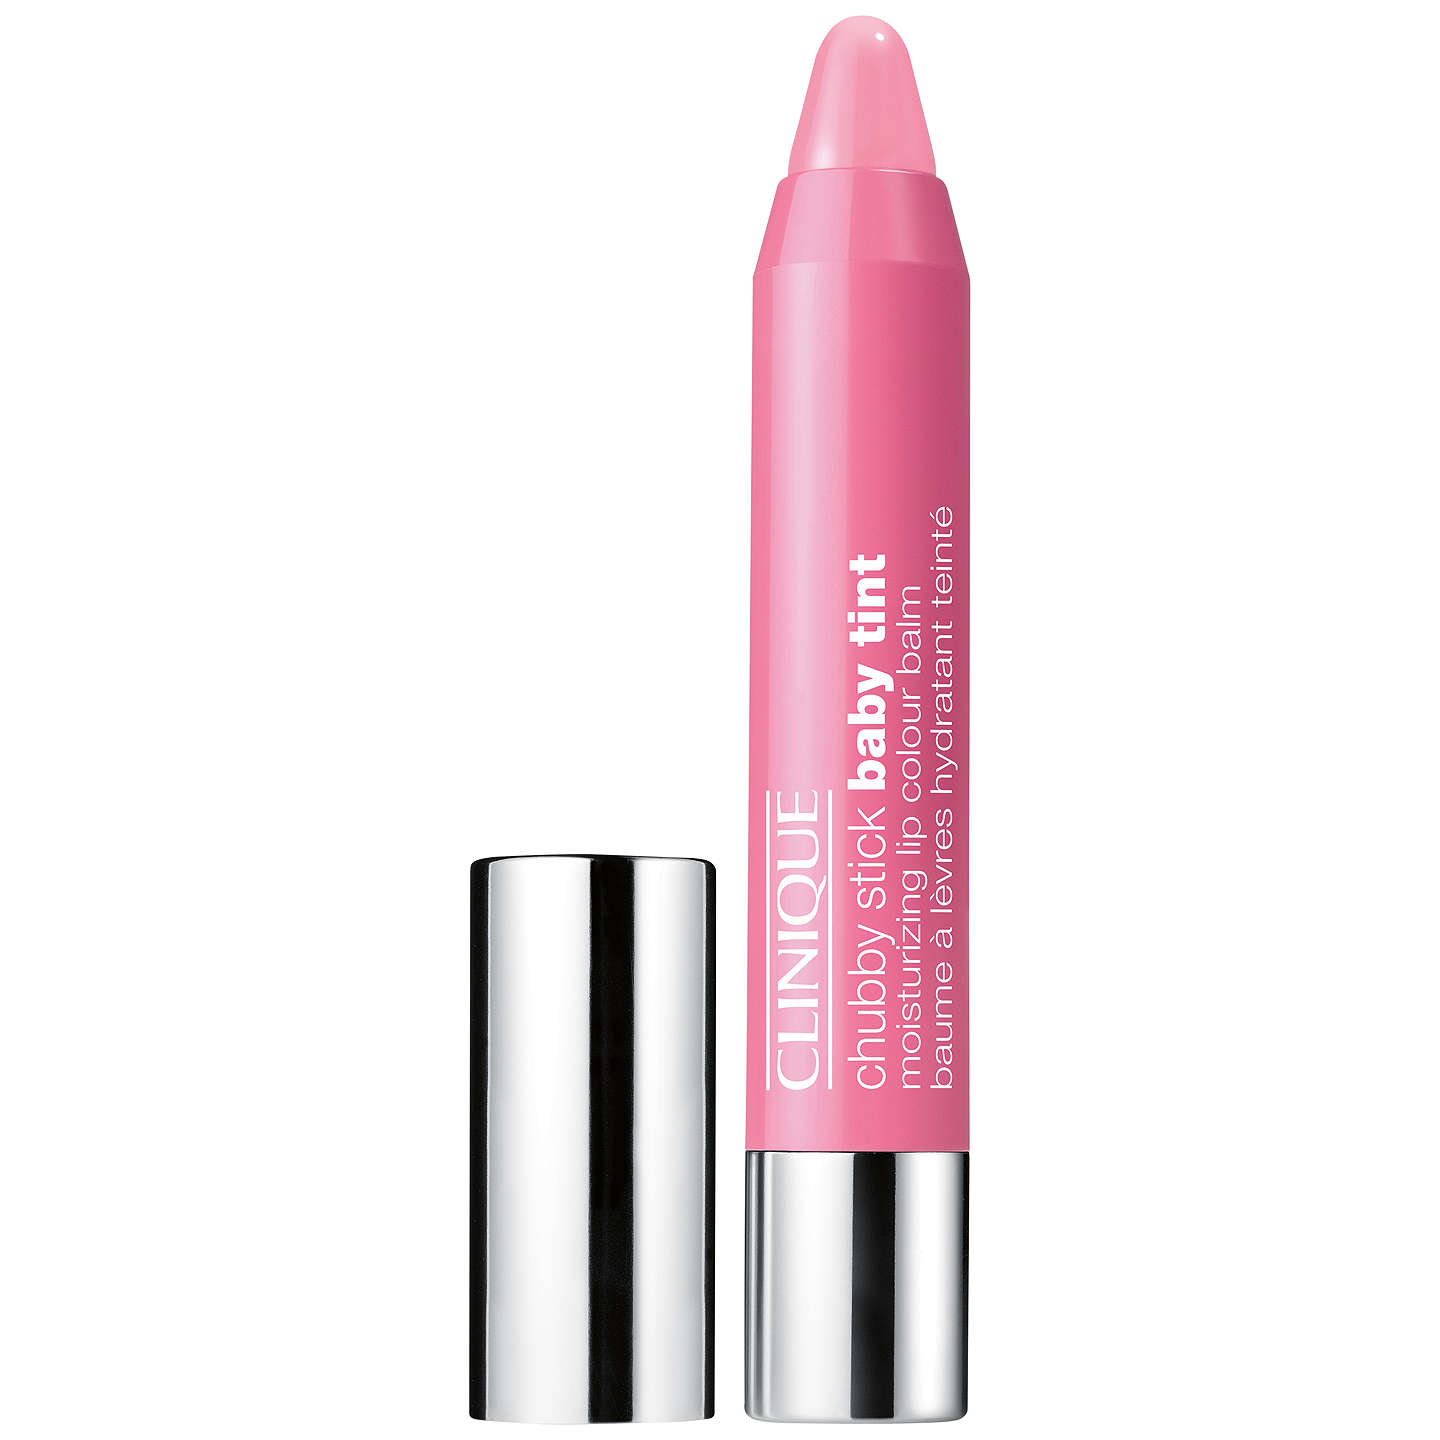 BuyClinique Chubby Baby Tint Lip Gloss, Budding Blossom Online at johnlewis.com